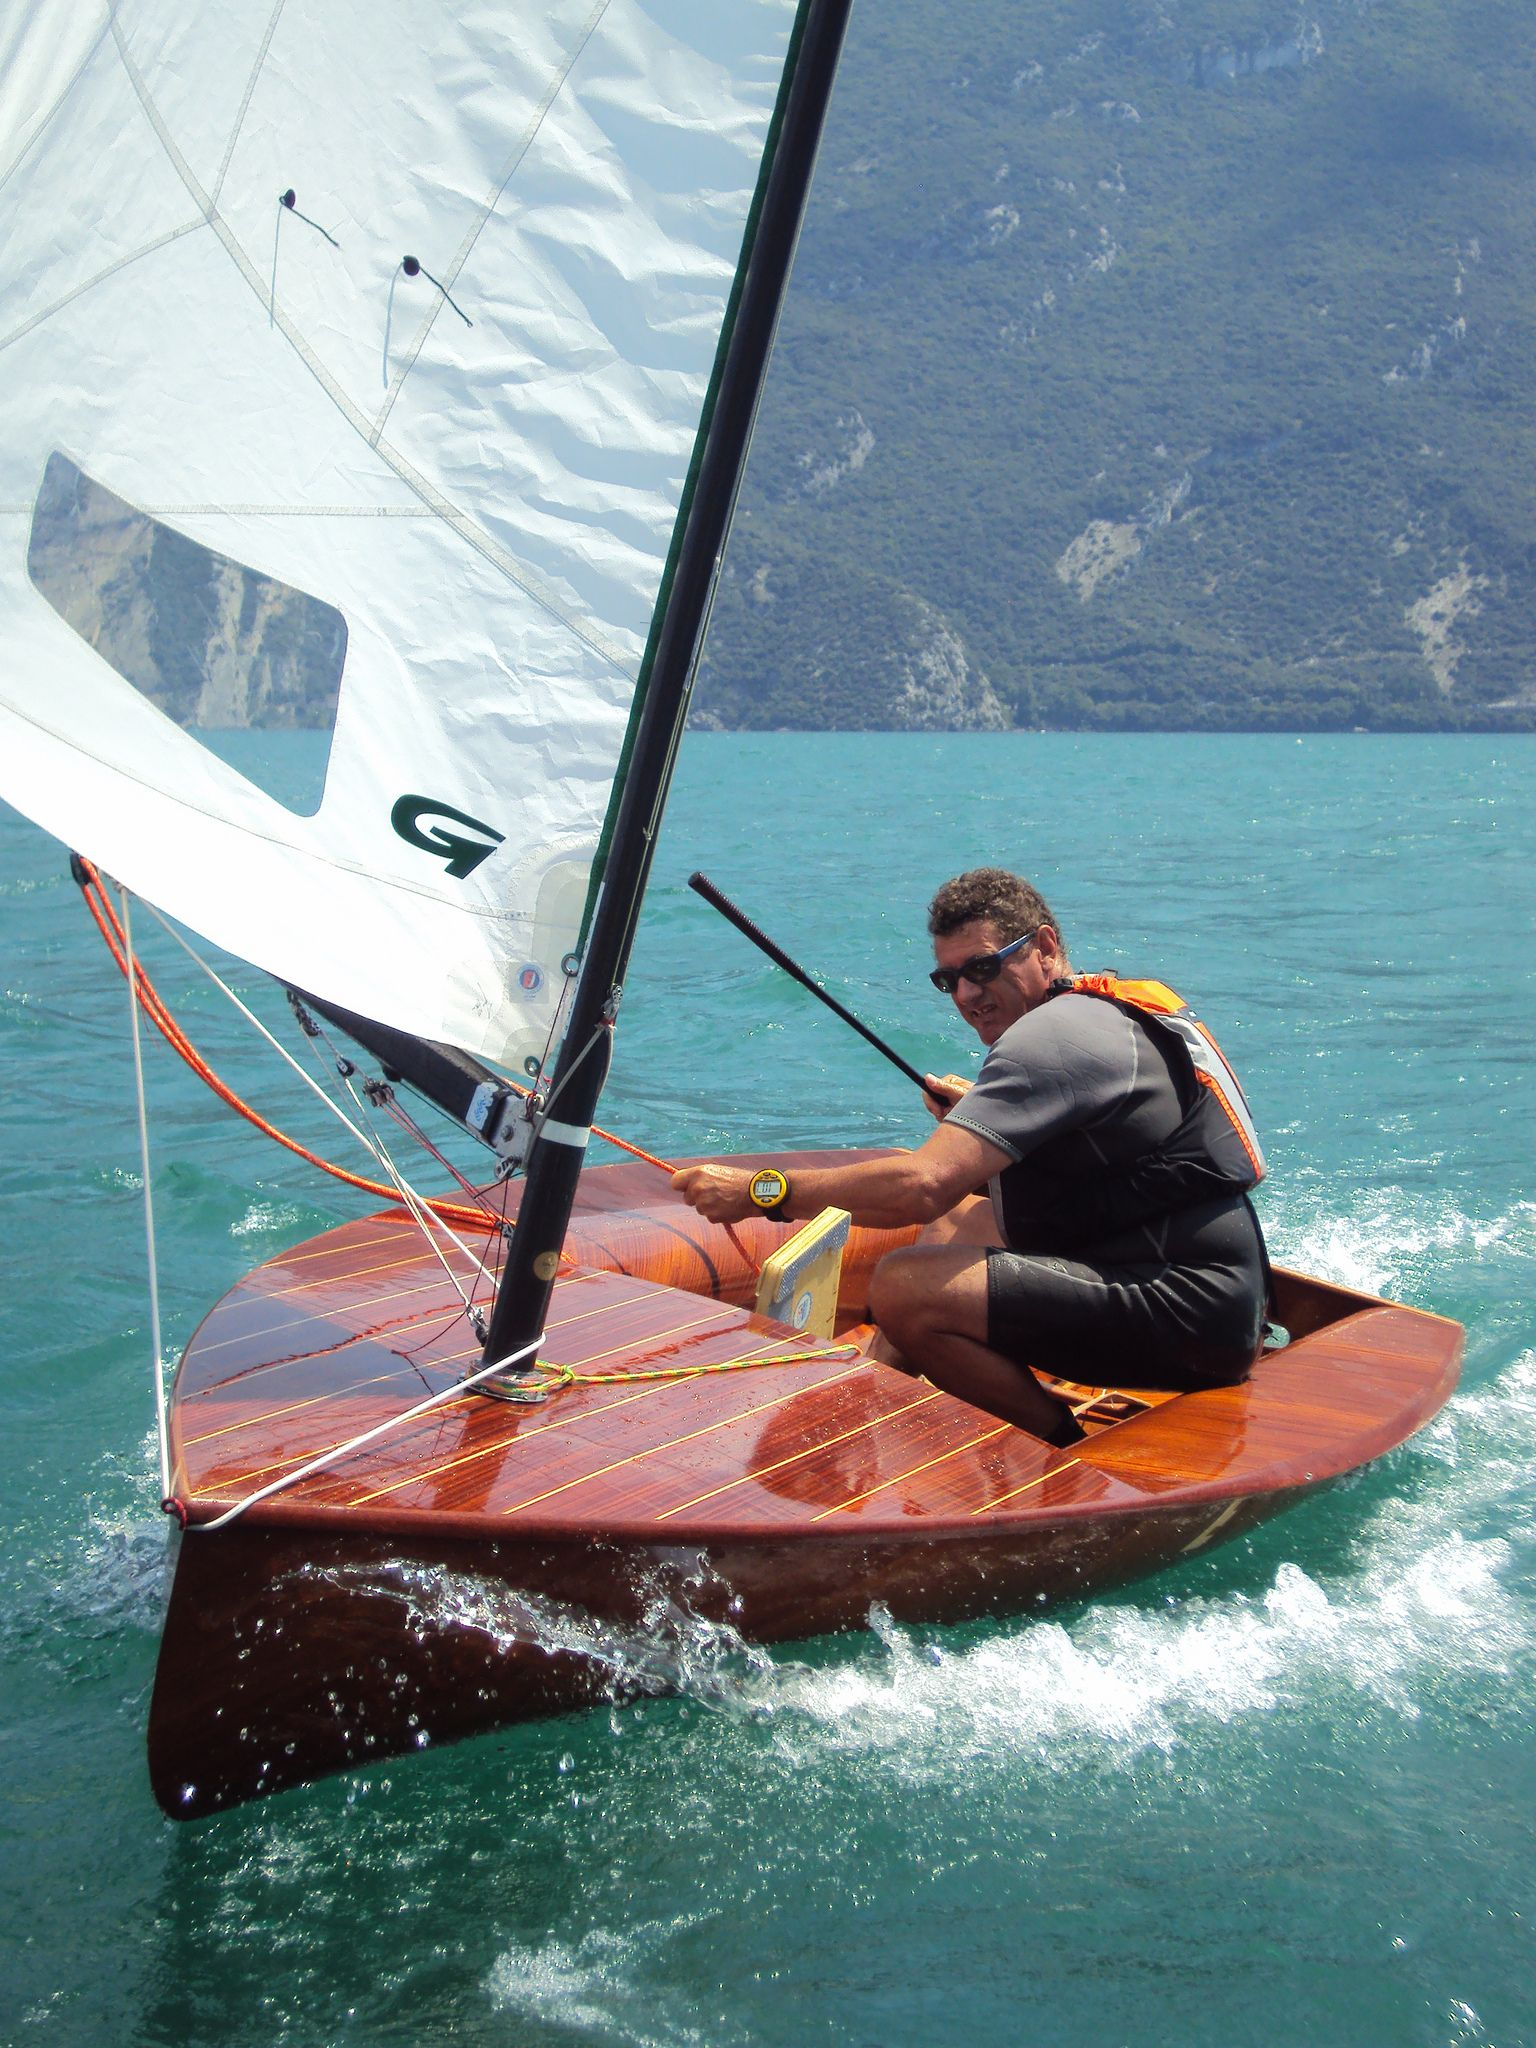 Dsc06794 In 2019 Sailing Dinghy Sailboat Wooden Sailboat Sailing Dinghy